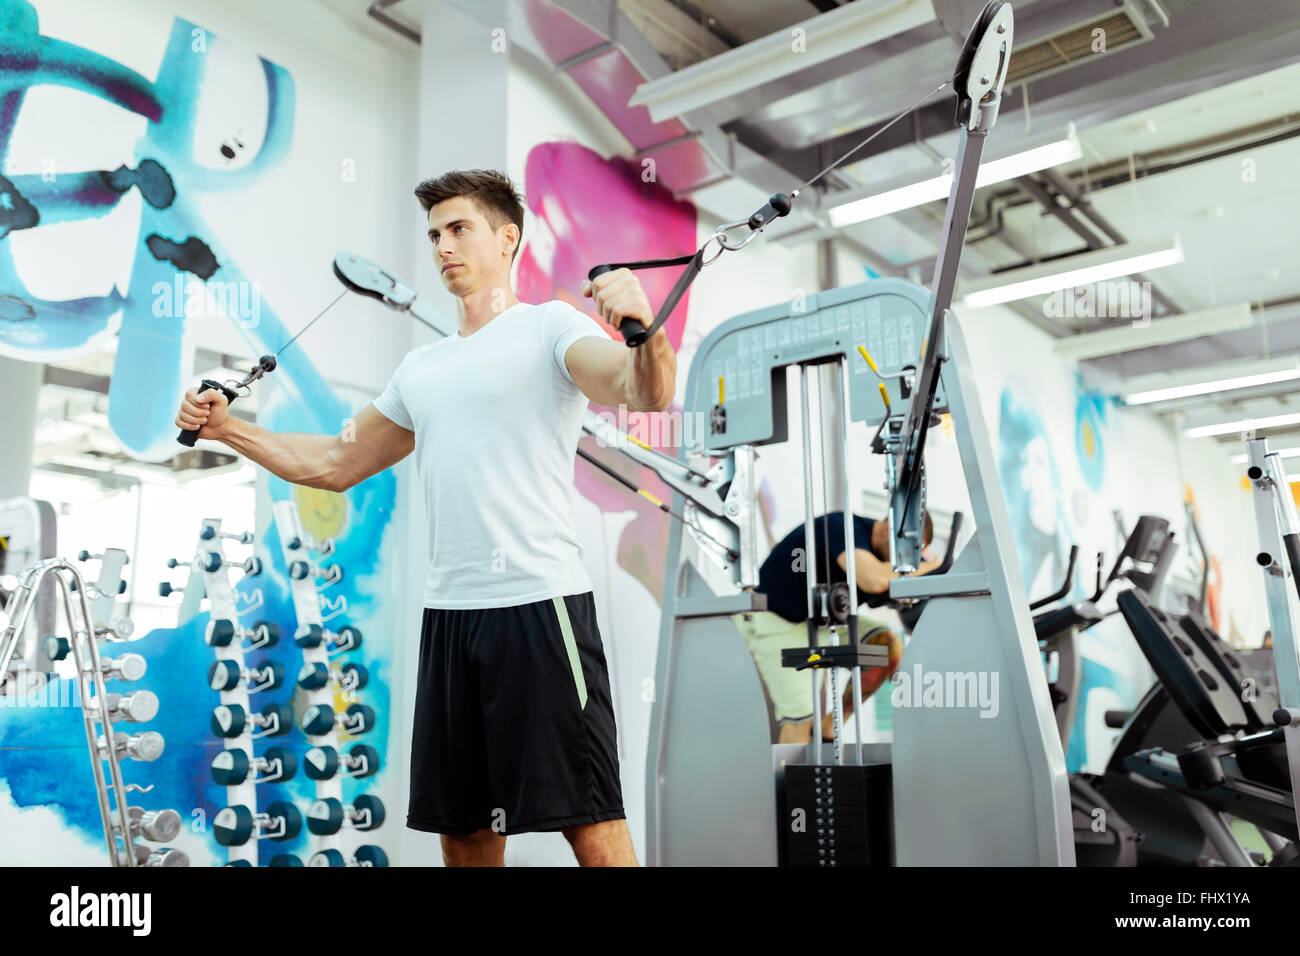 Handsome man training in clean modern gym on various machines - Stock Image